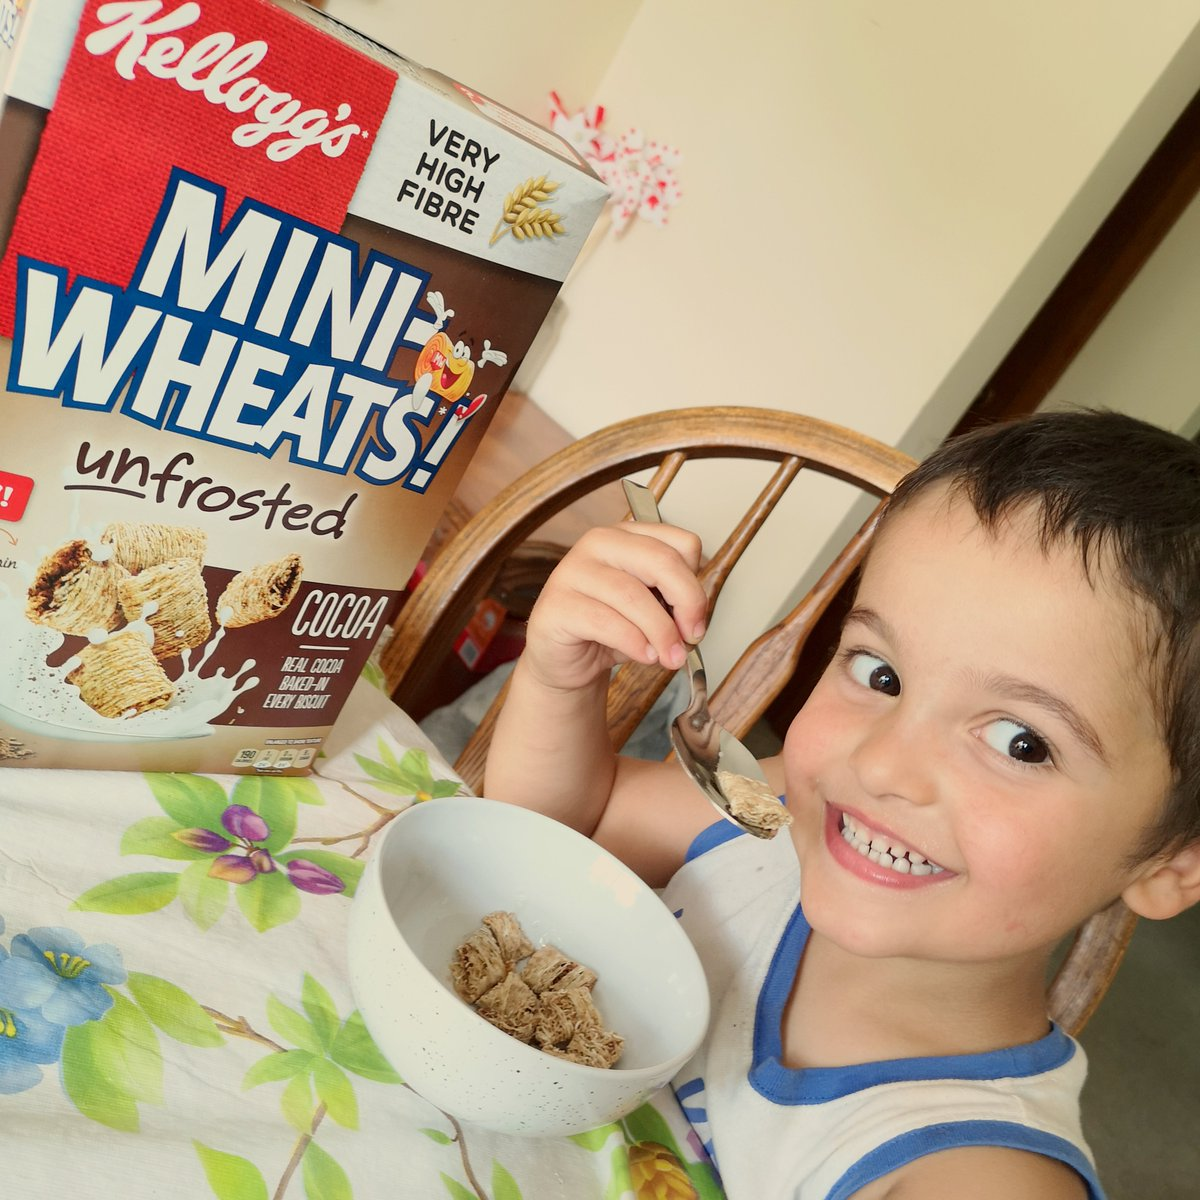 Passed the taste test!  #MiniWheatsUnfrostedCocoa #BigFoodForBigDays #gifted #giftedproduct @miniwheats_ca @Influensterca https://t.co/HXeo6HlQe7